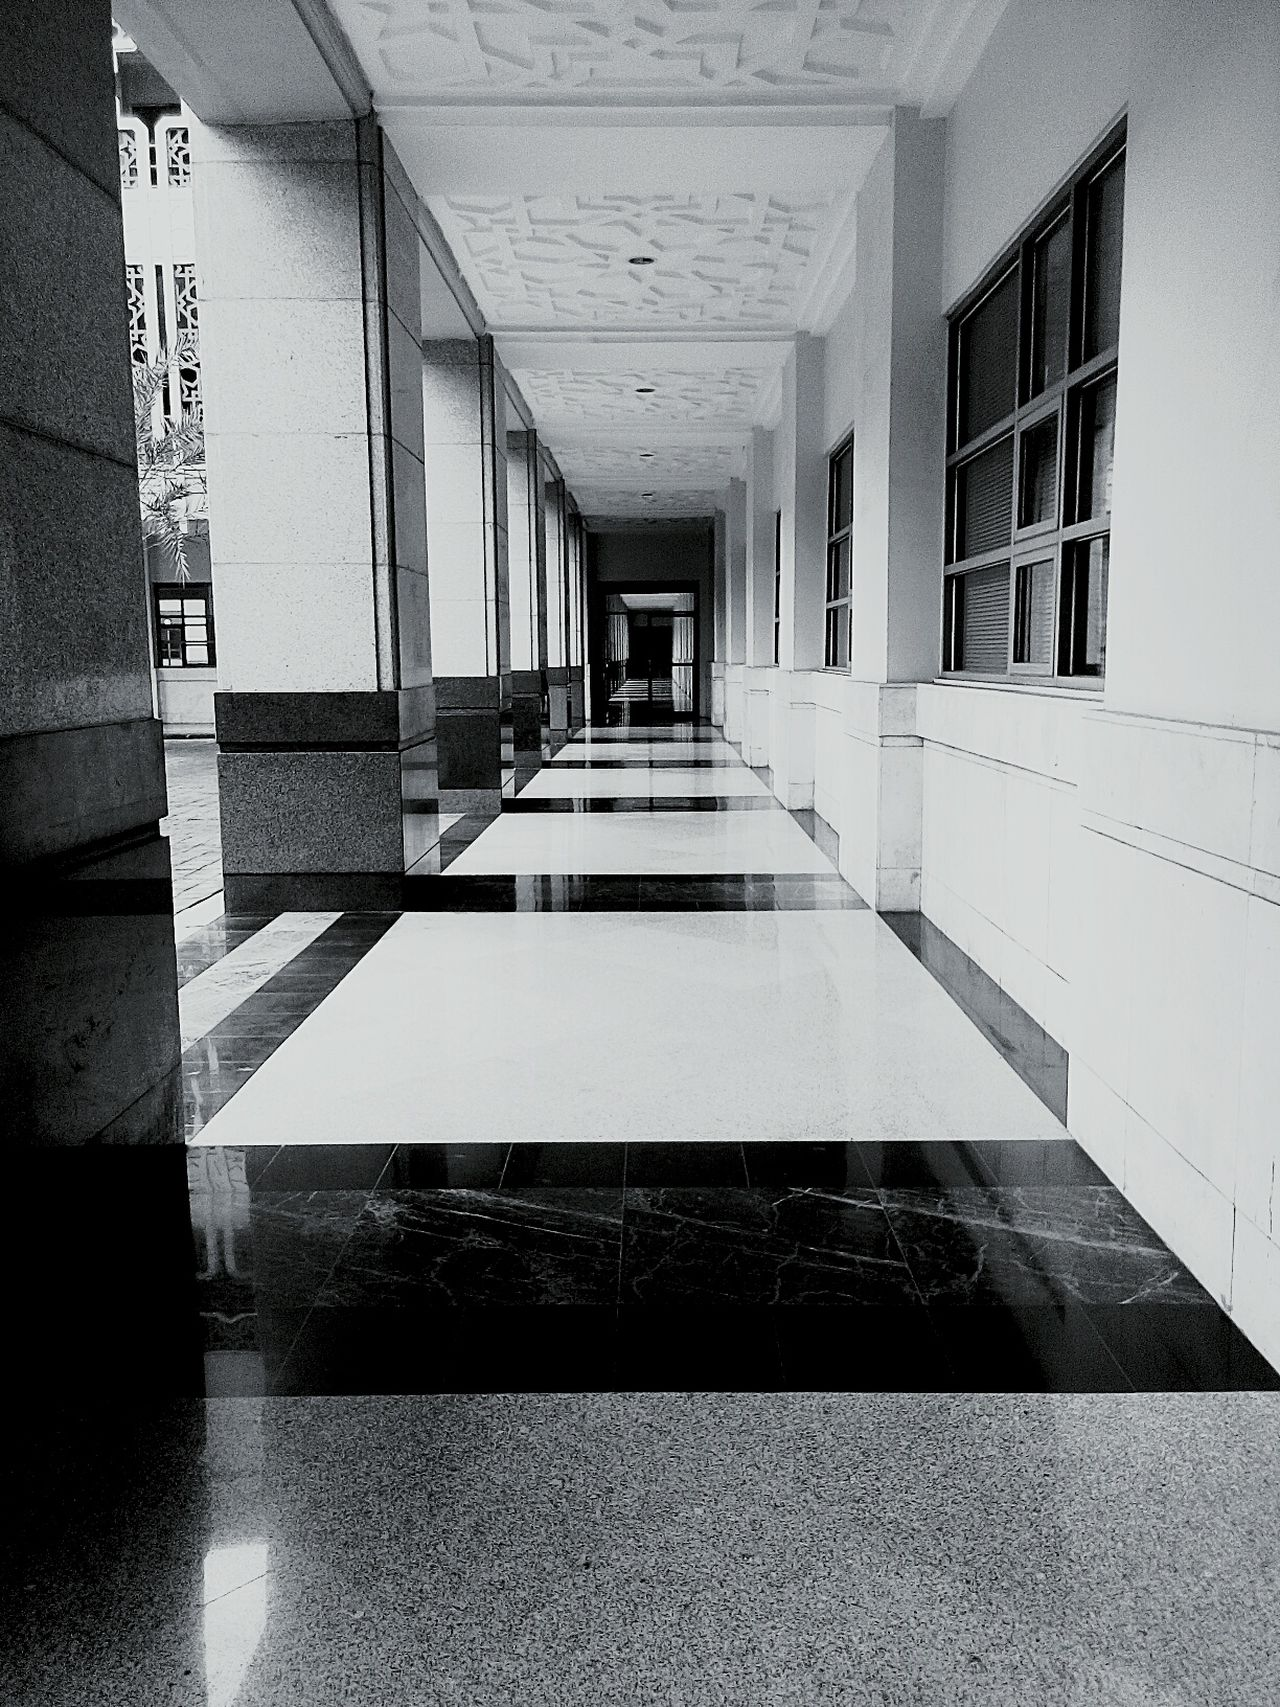 Architecture No People Built Structure Shadow Indoors  Transportation The Way Forward Exit Sign Day Coridor Road First Eyeem Photo Black & White Photography Black And White Collection  Blackwhite Blackandwhitephoto Blackandwhite Black & White Blackandwhite Photography Black And White Photography Blackandwhitephotography B&w B&W Portrait